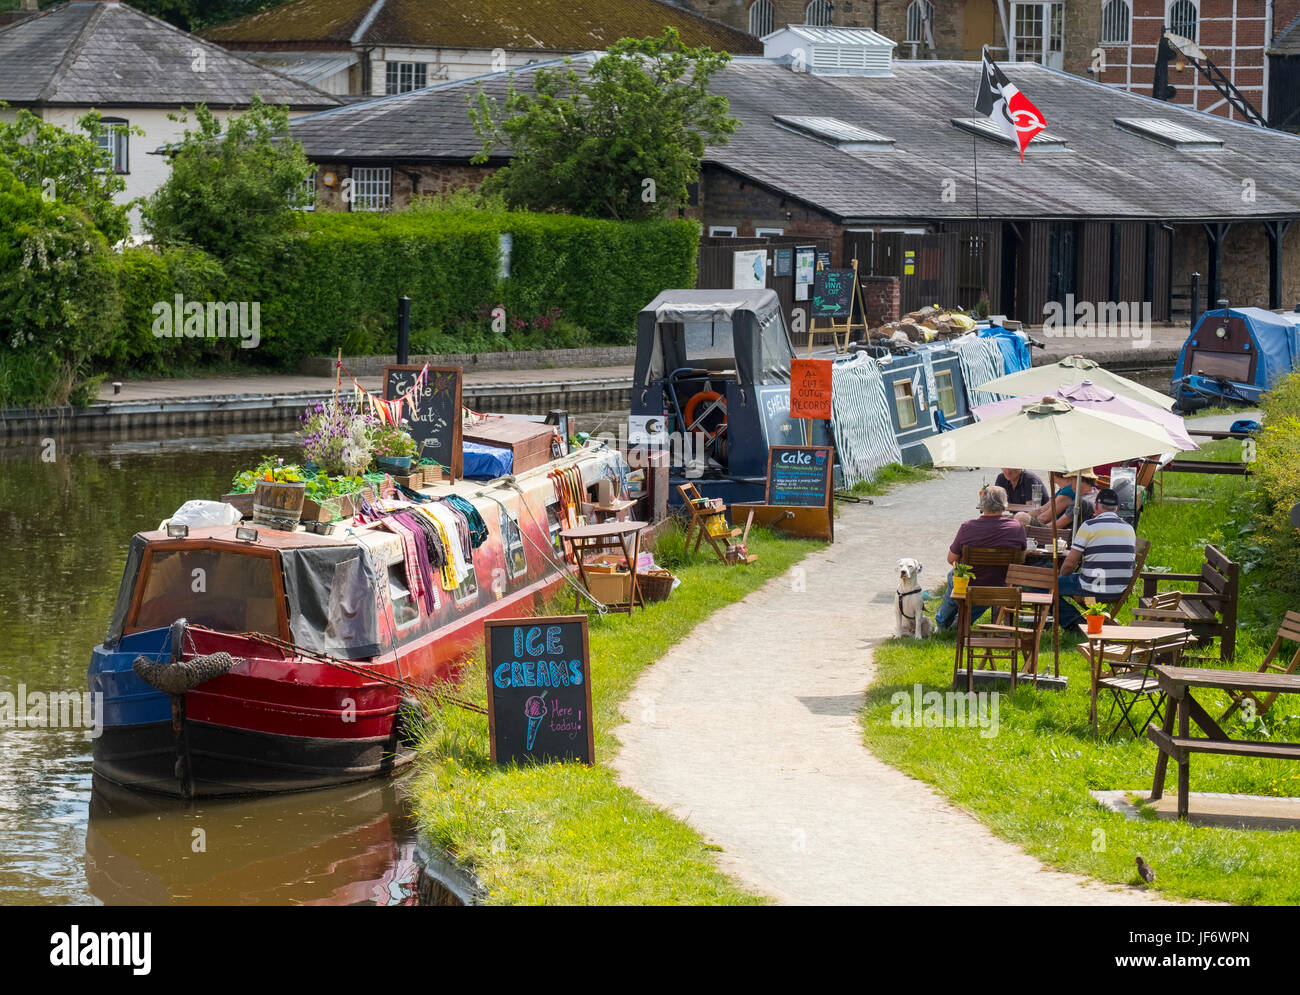 Narrow boats selling ice cream and produce on the Llangollen Canal at Ellesmere, Shropshire, England, UK - Stock Image